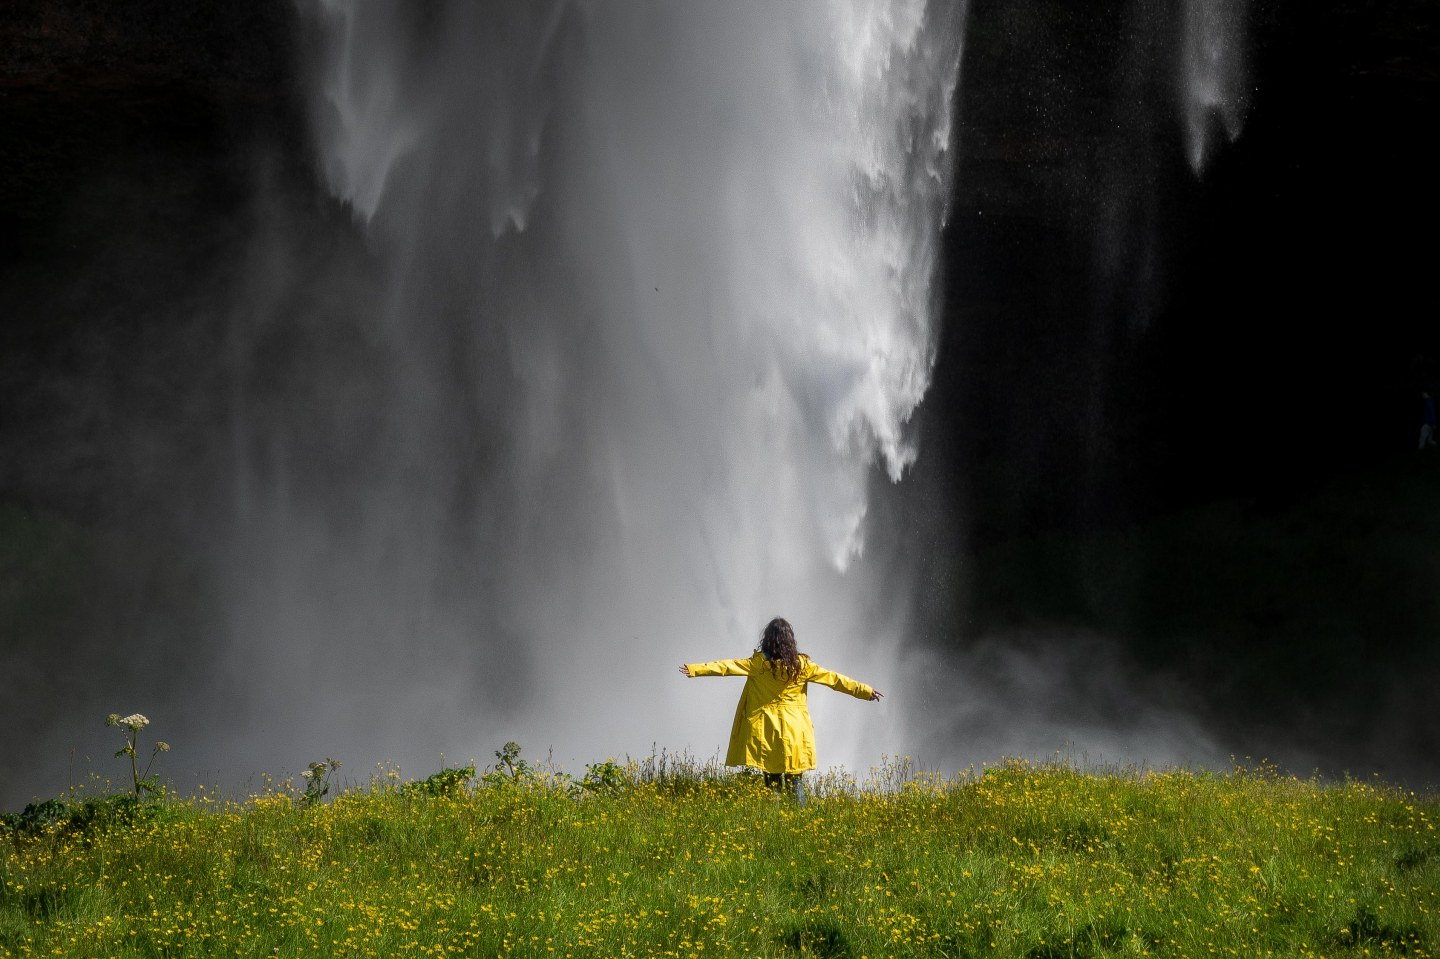 A girl standing under the waterfall, Seljalandfoss, Iceland.